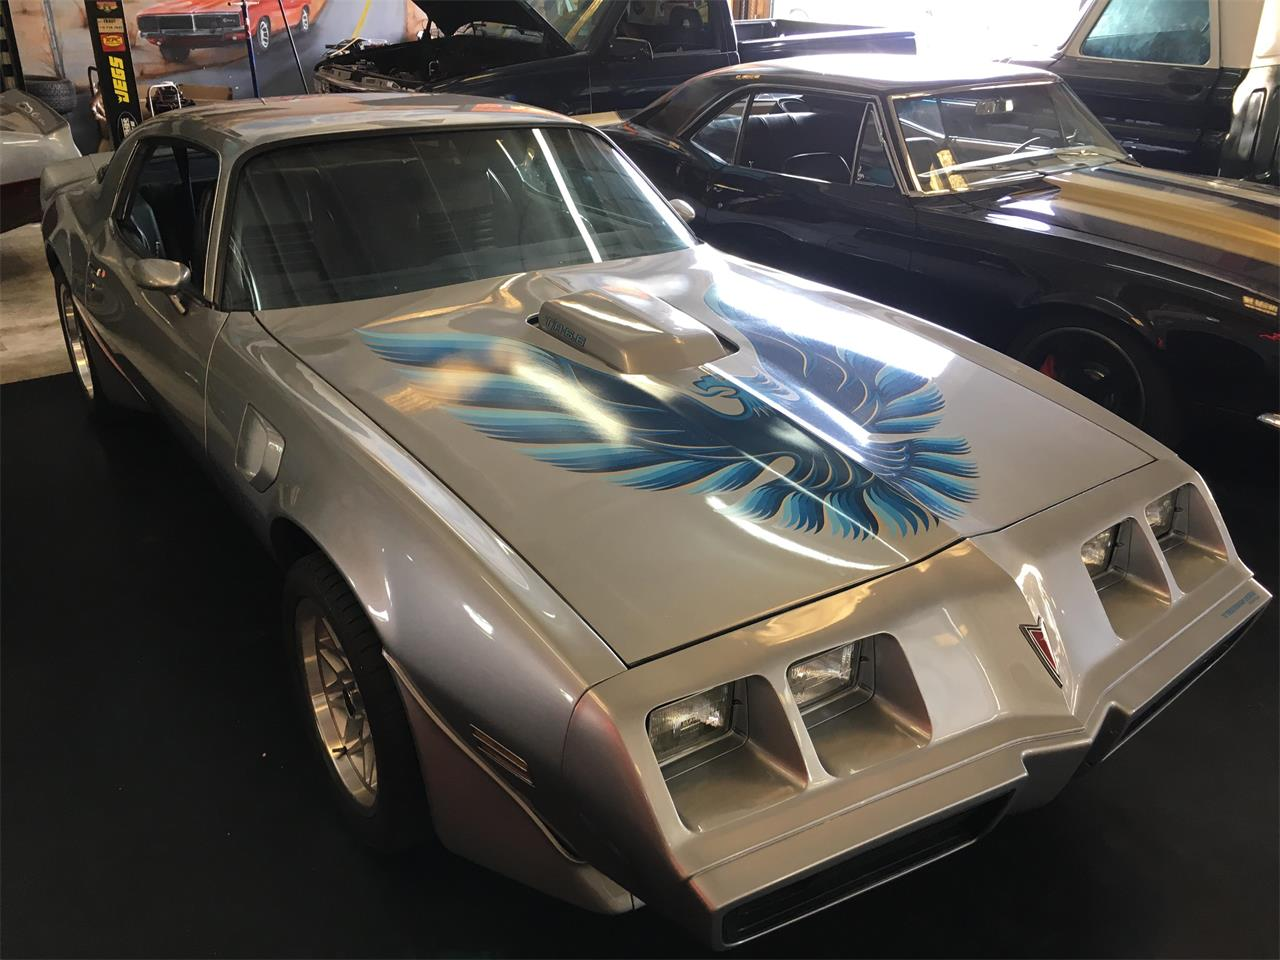 1981 Pontiac Firebird Trans Am for sale in Ponte Verda Beach, FL – photo 21